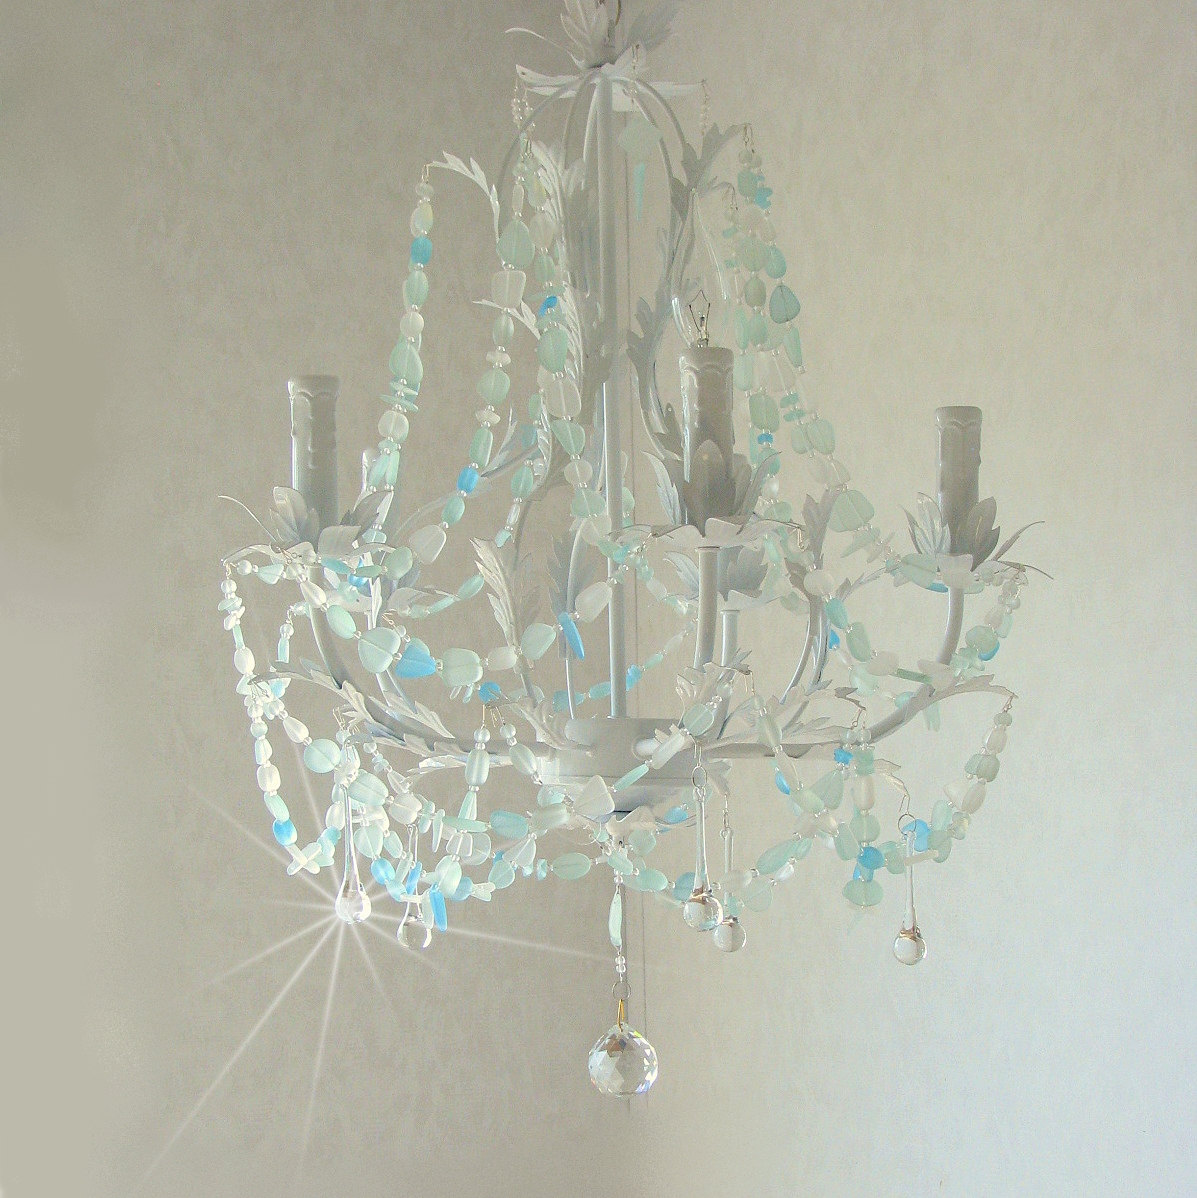 Sea glass chandelier lighting beach cottage chic coastal decor zoom mozeypictures Images